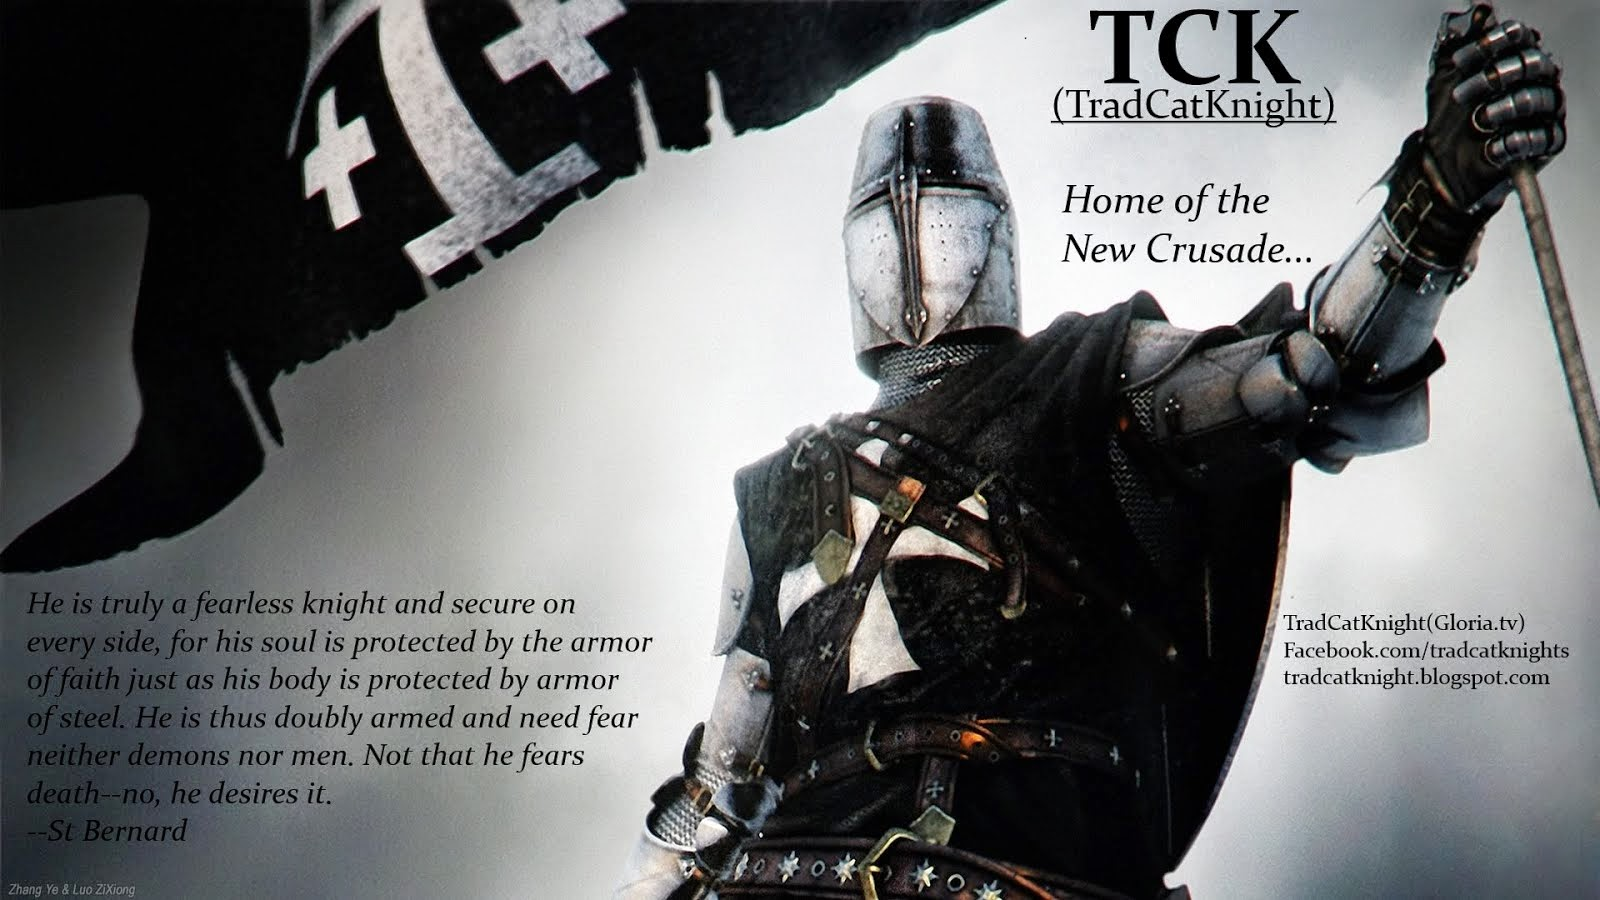 Join the New Crusade!